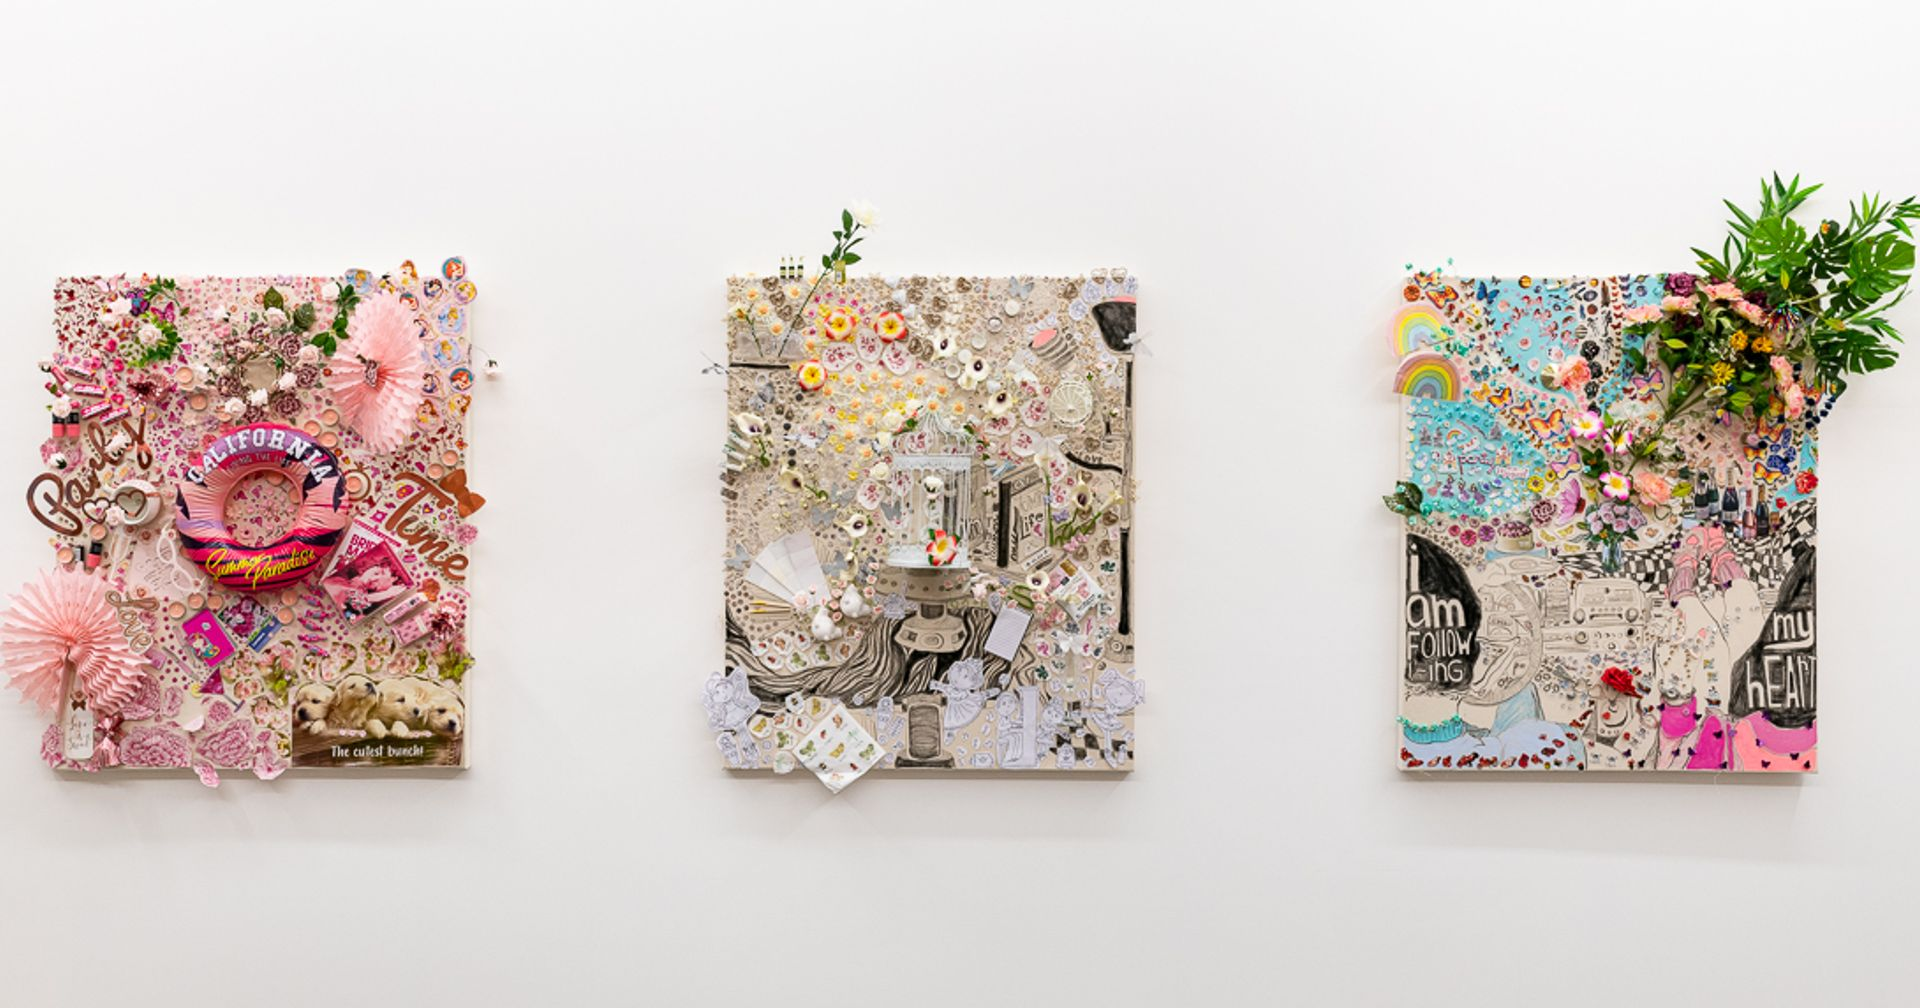 Installation view, Gretchen Andrews: Other Forms of Travel (2021) Courtesy of the artist and Annka Kultys Gallery